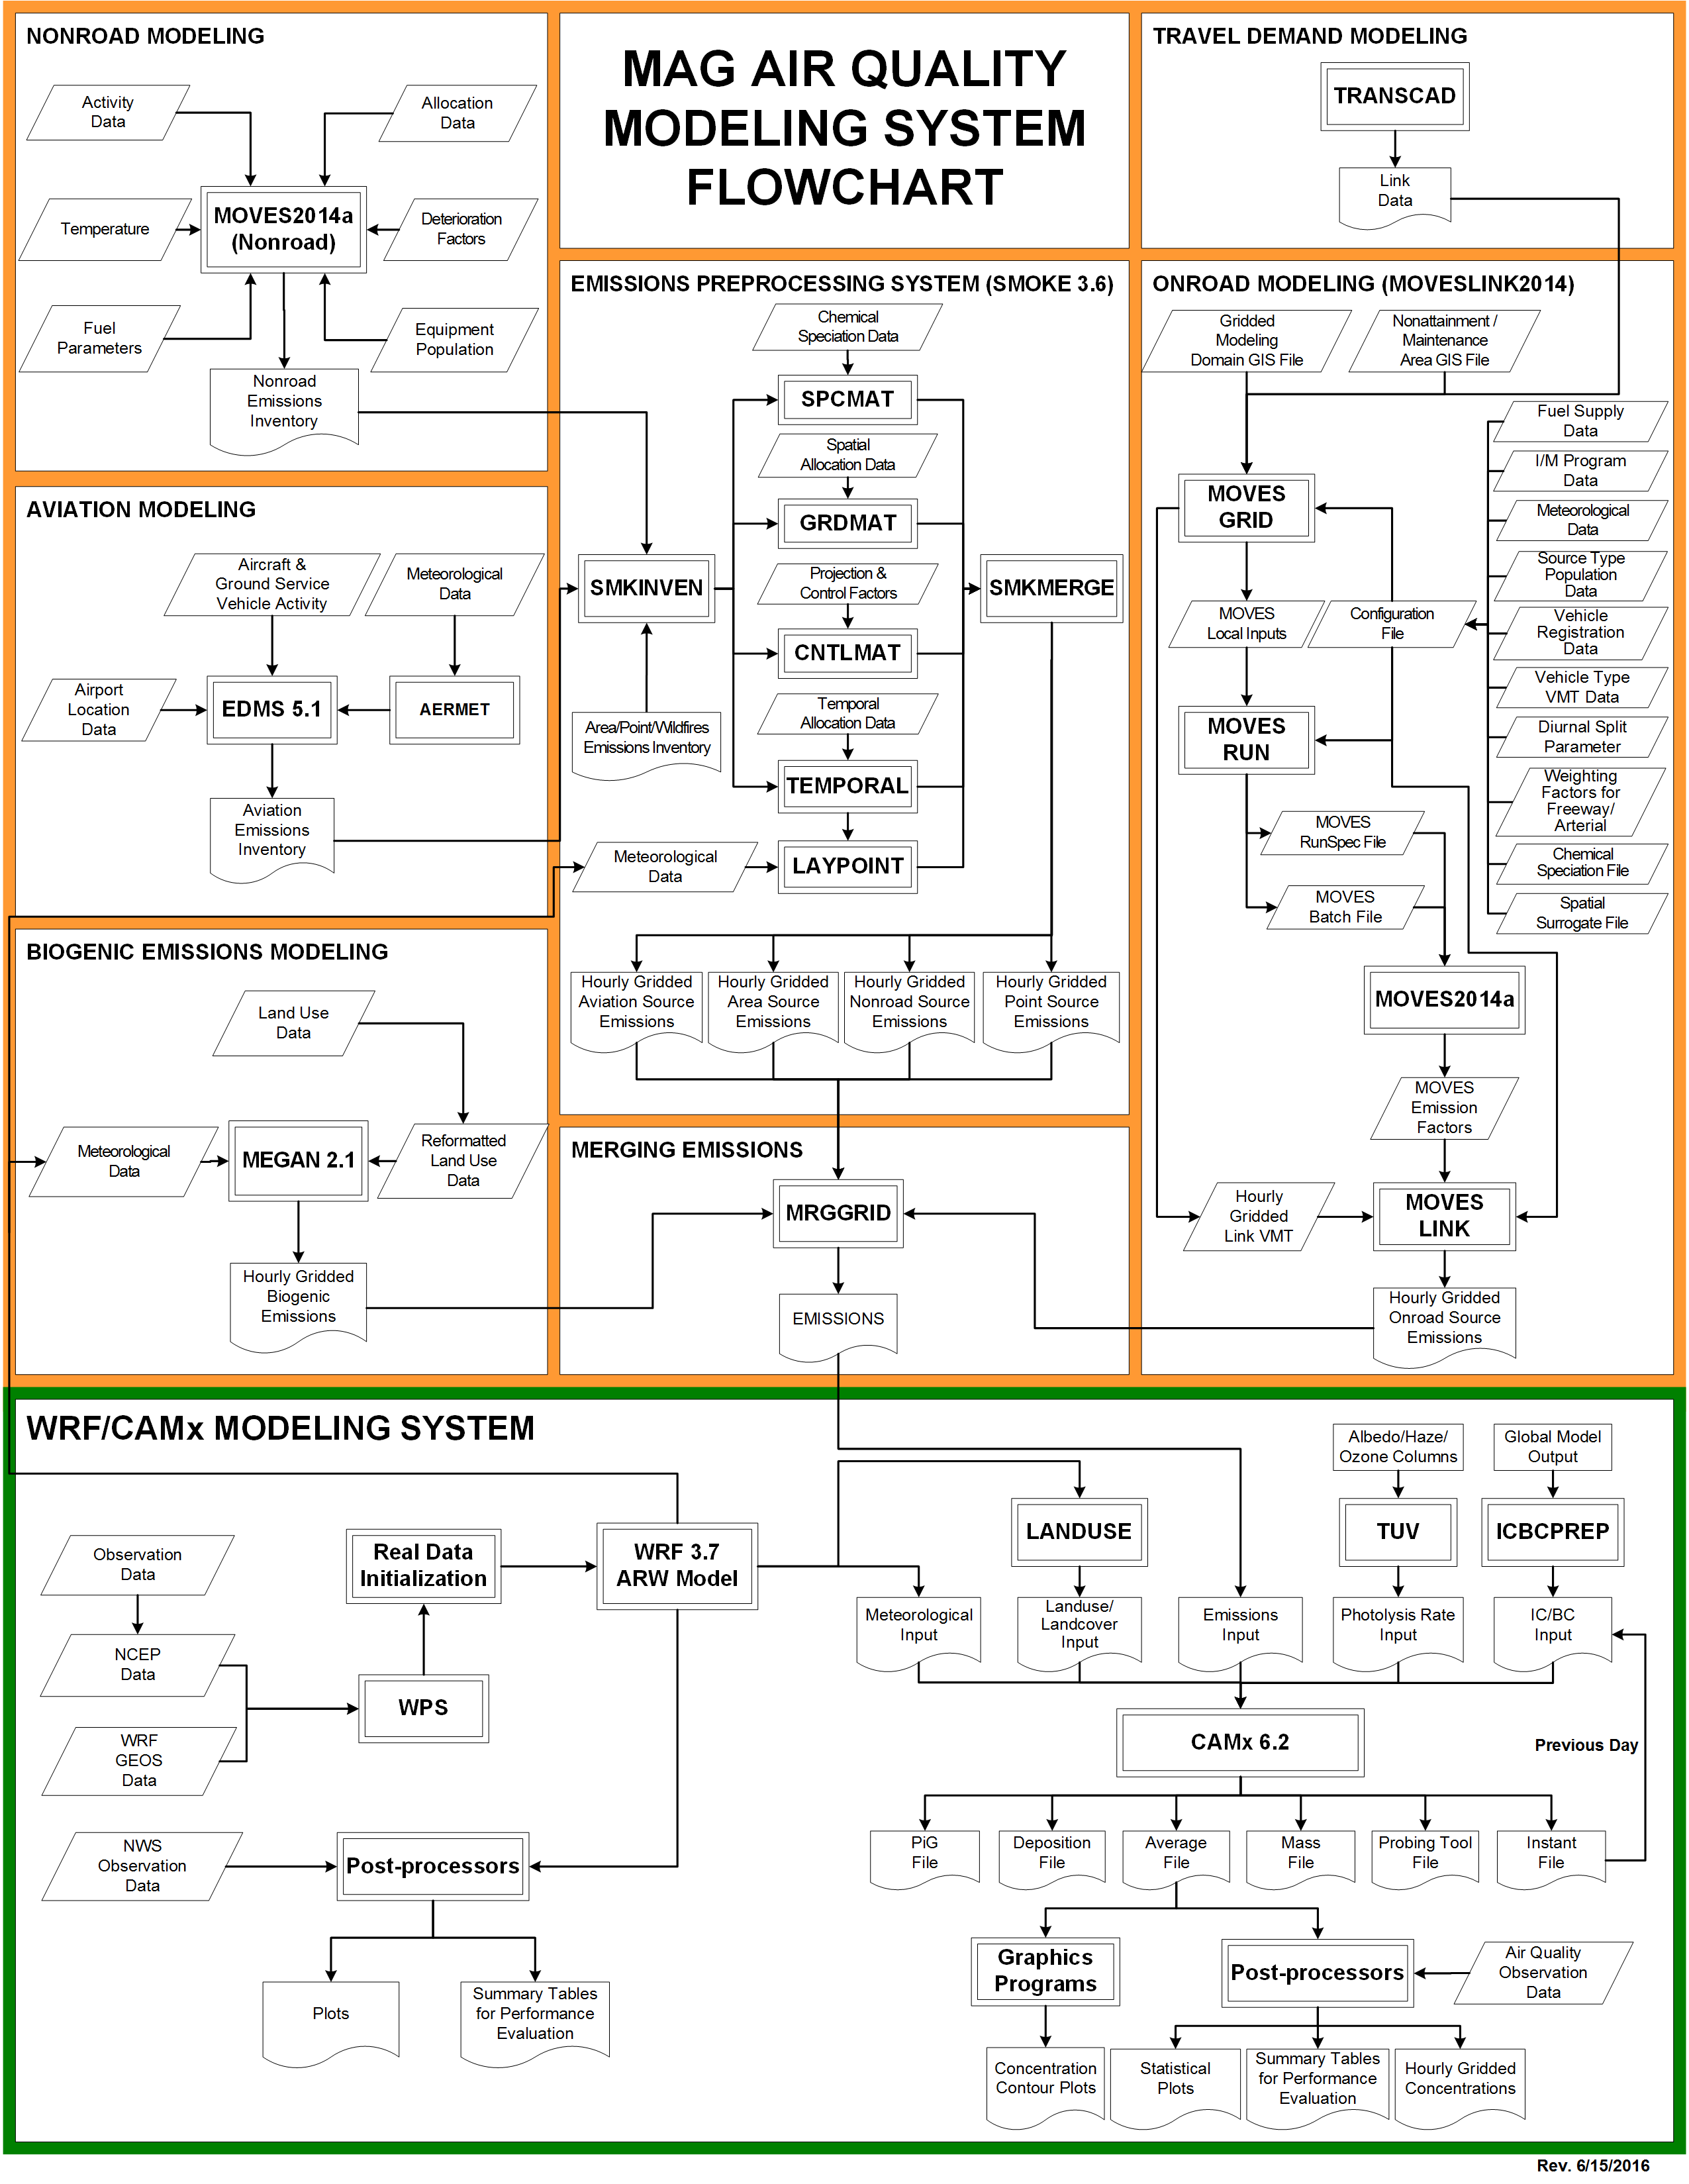 MAG Air Quality Modeling System Flowchart